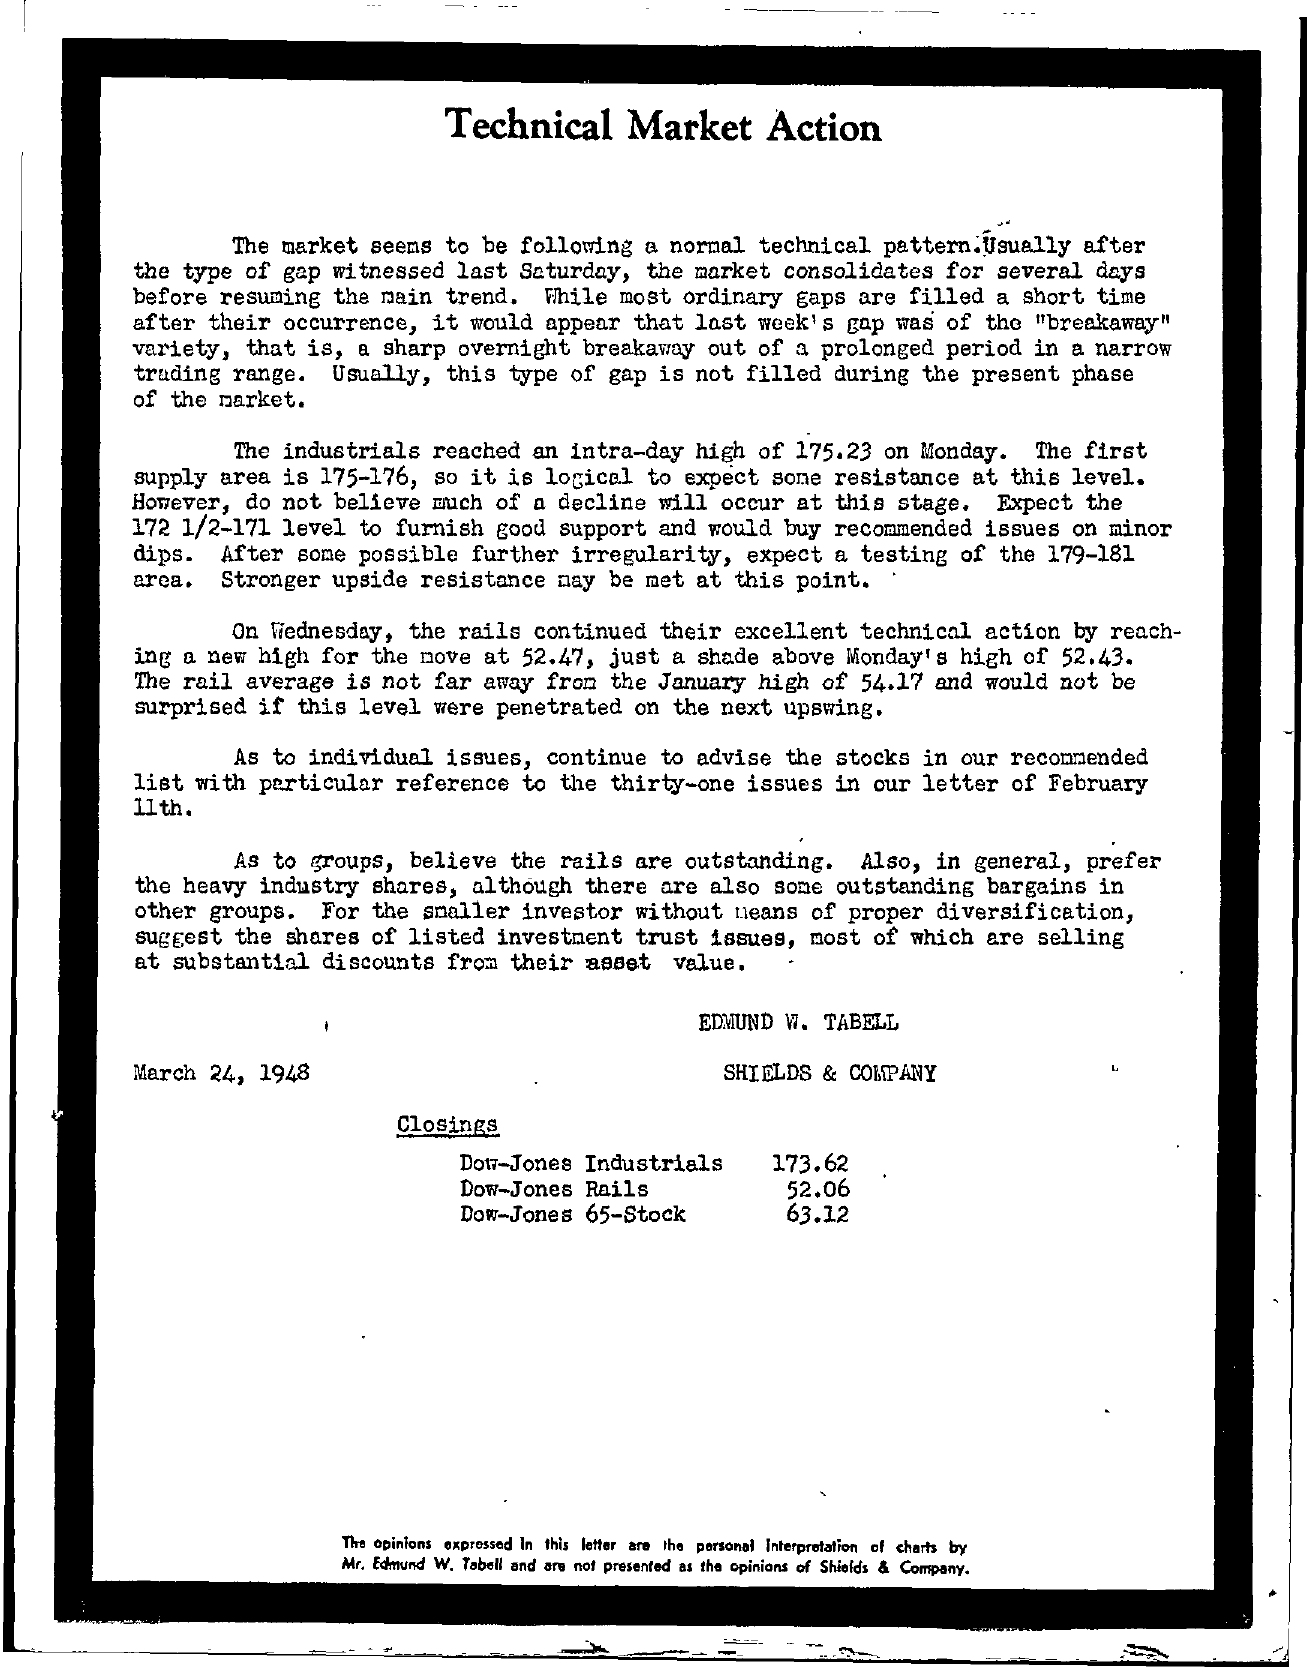 Tabell's Market Letter - March 24, 1948